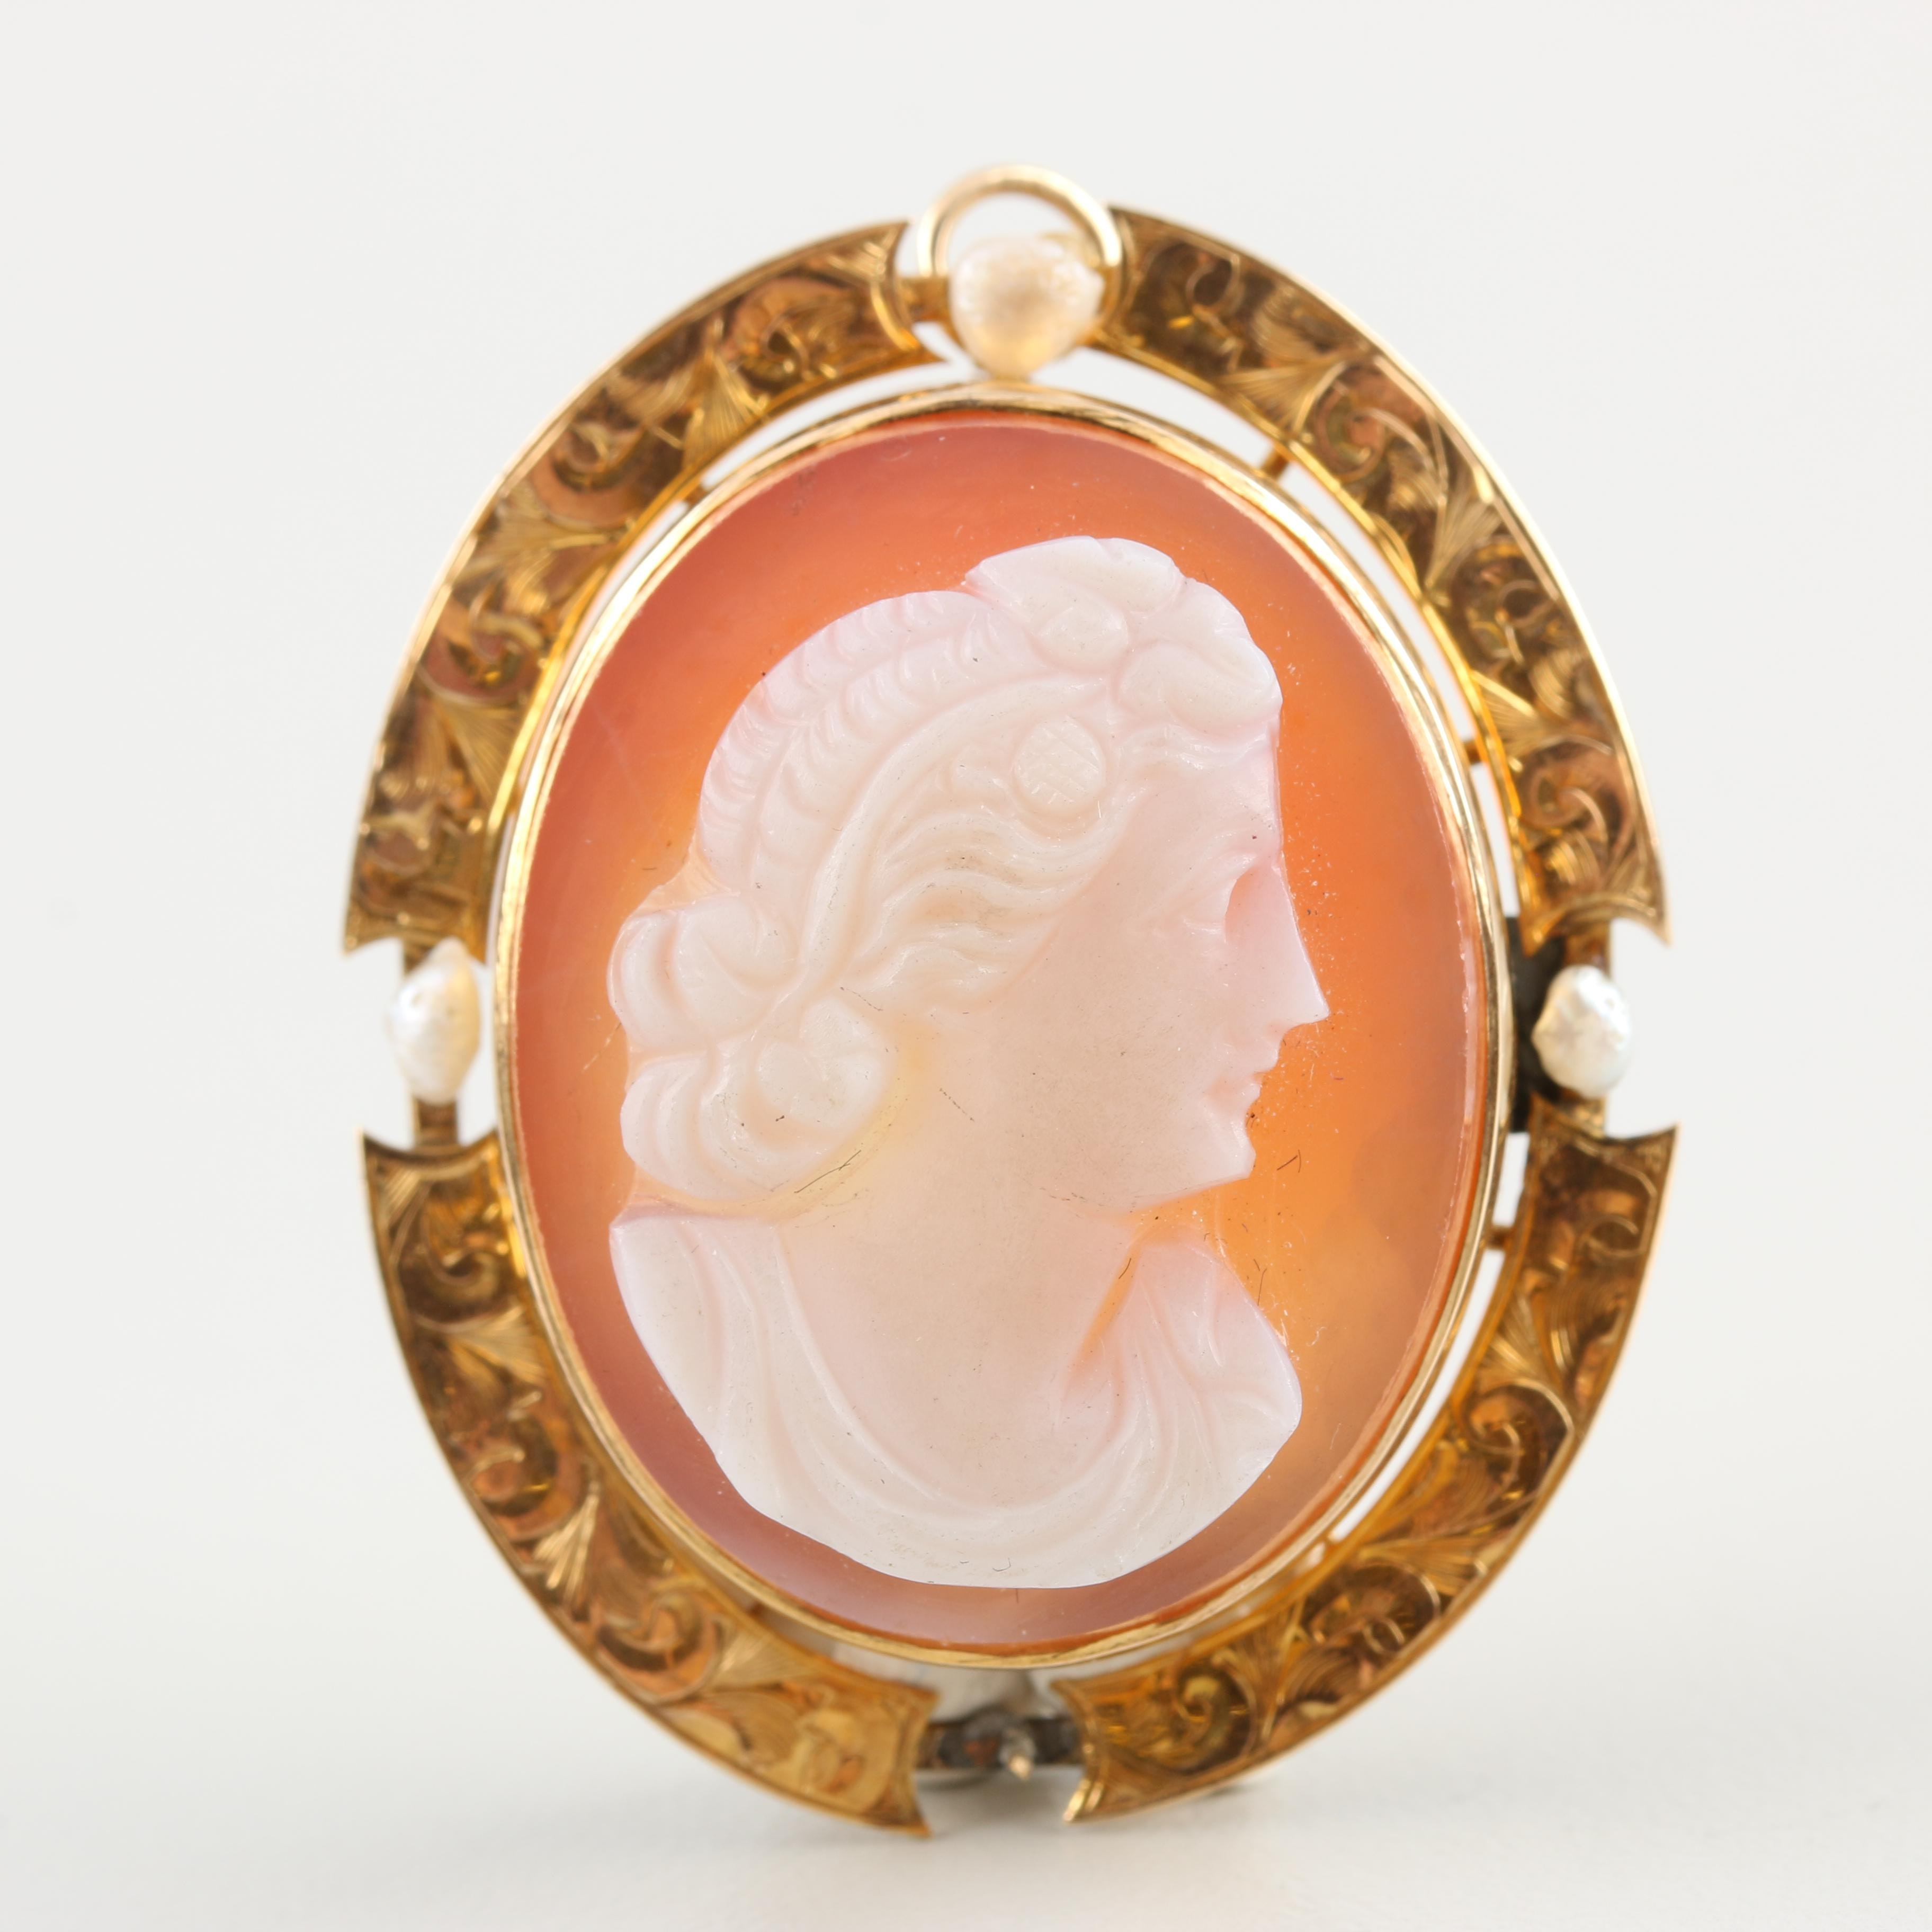 Victorian 10K Yellow Gold Agate and Seed Pearl Converter Brooch